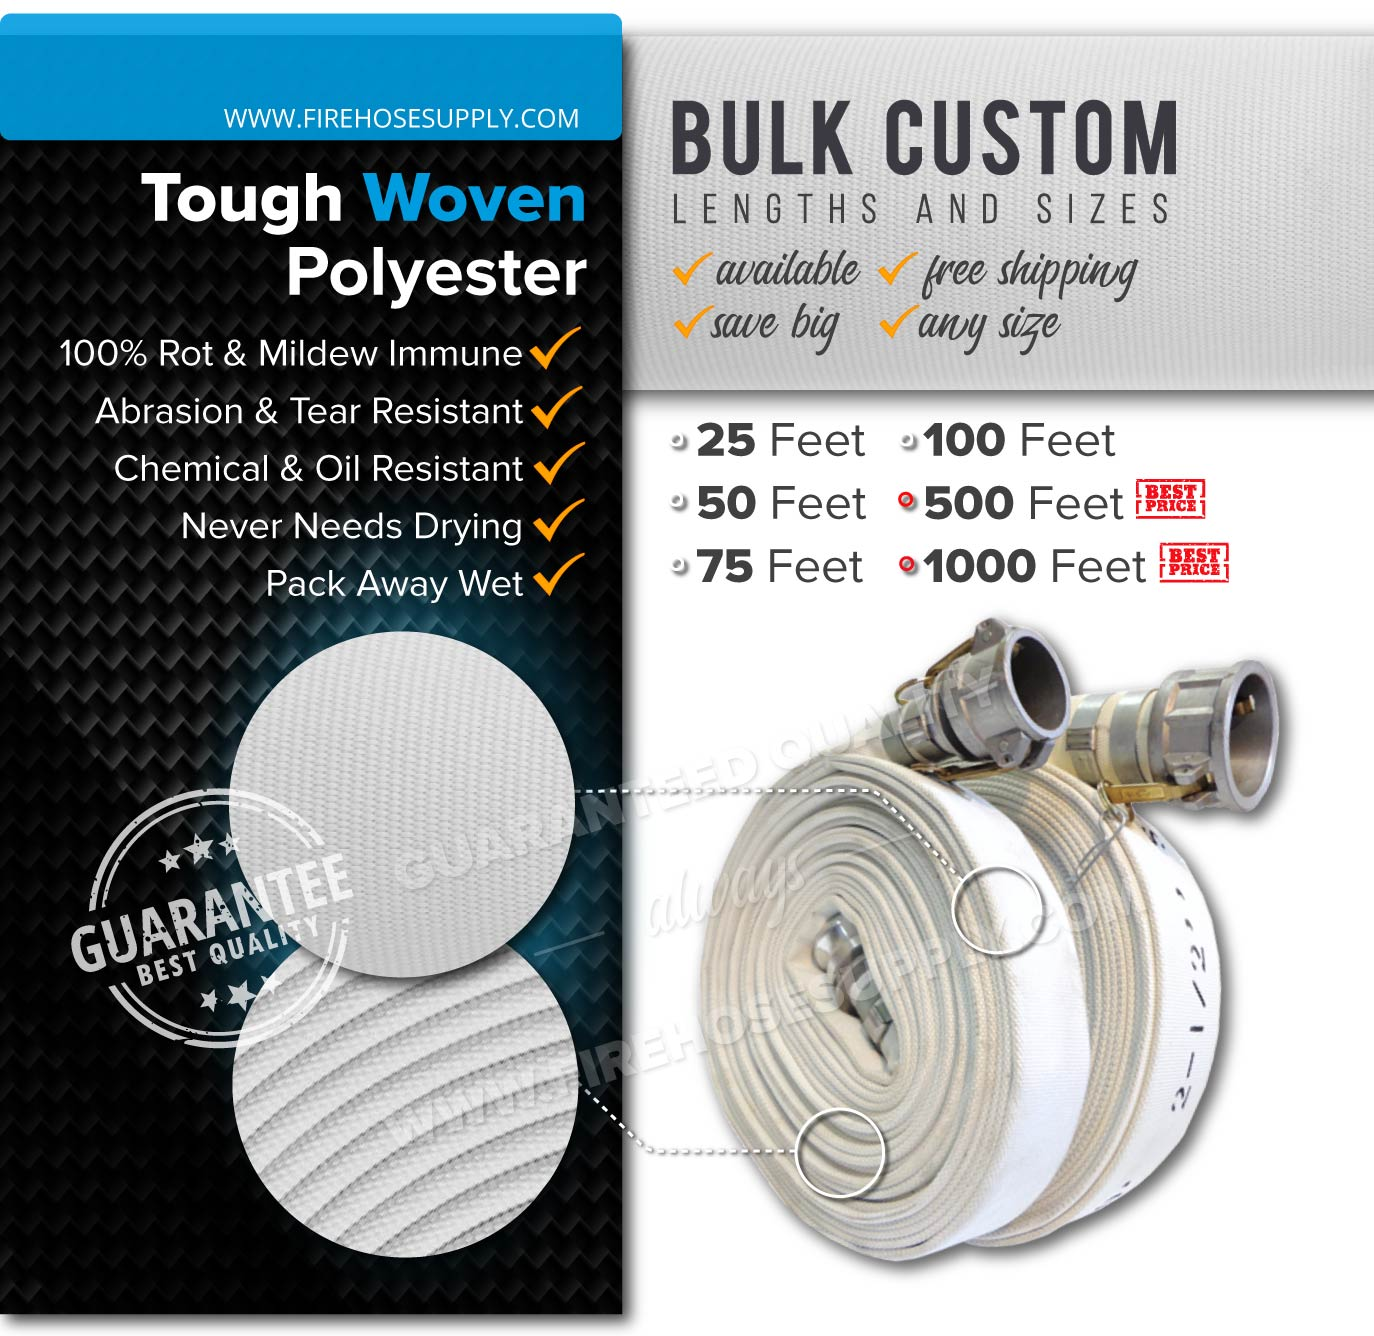 2 inch camlock quick connect hose polyester cotton materials bulk custom deals white